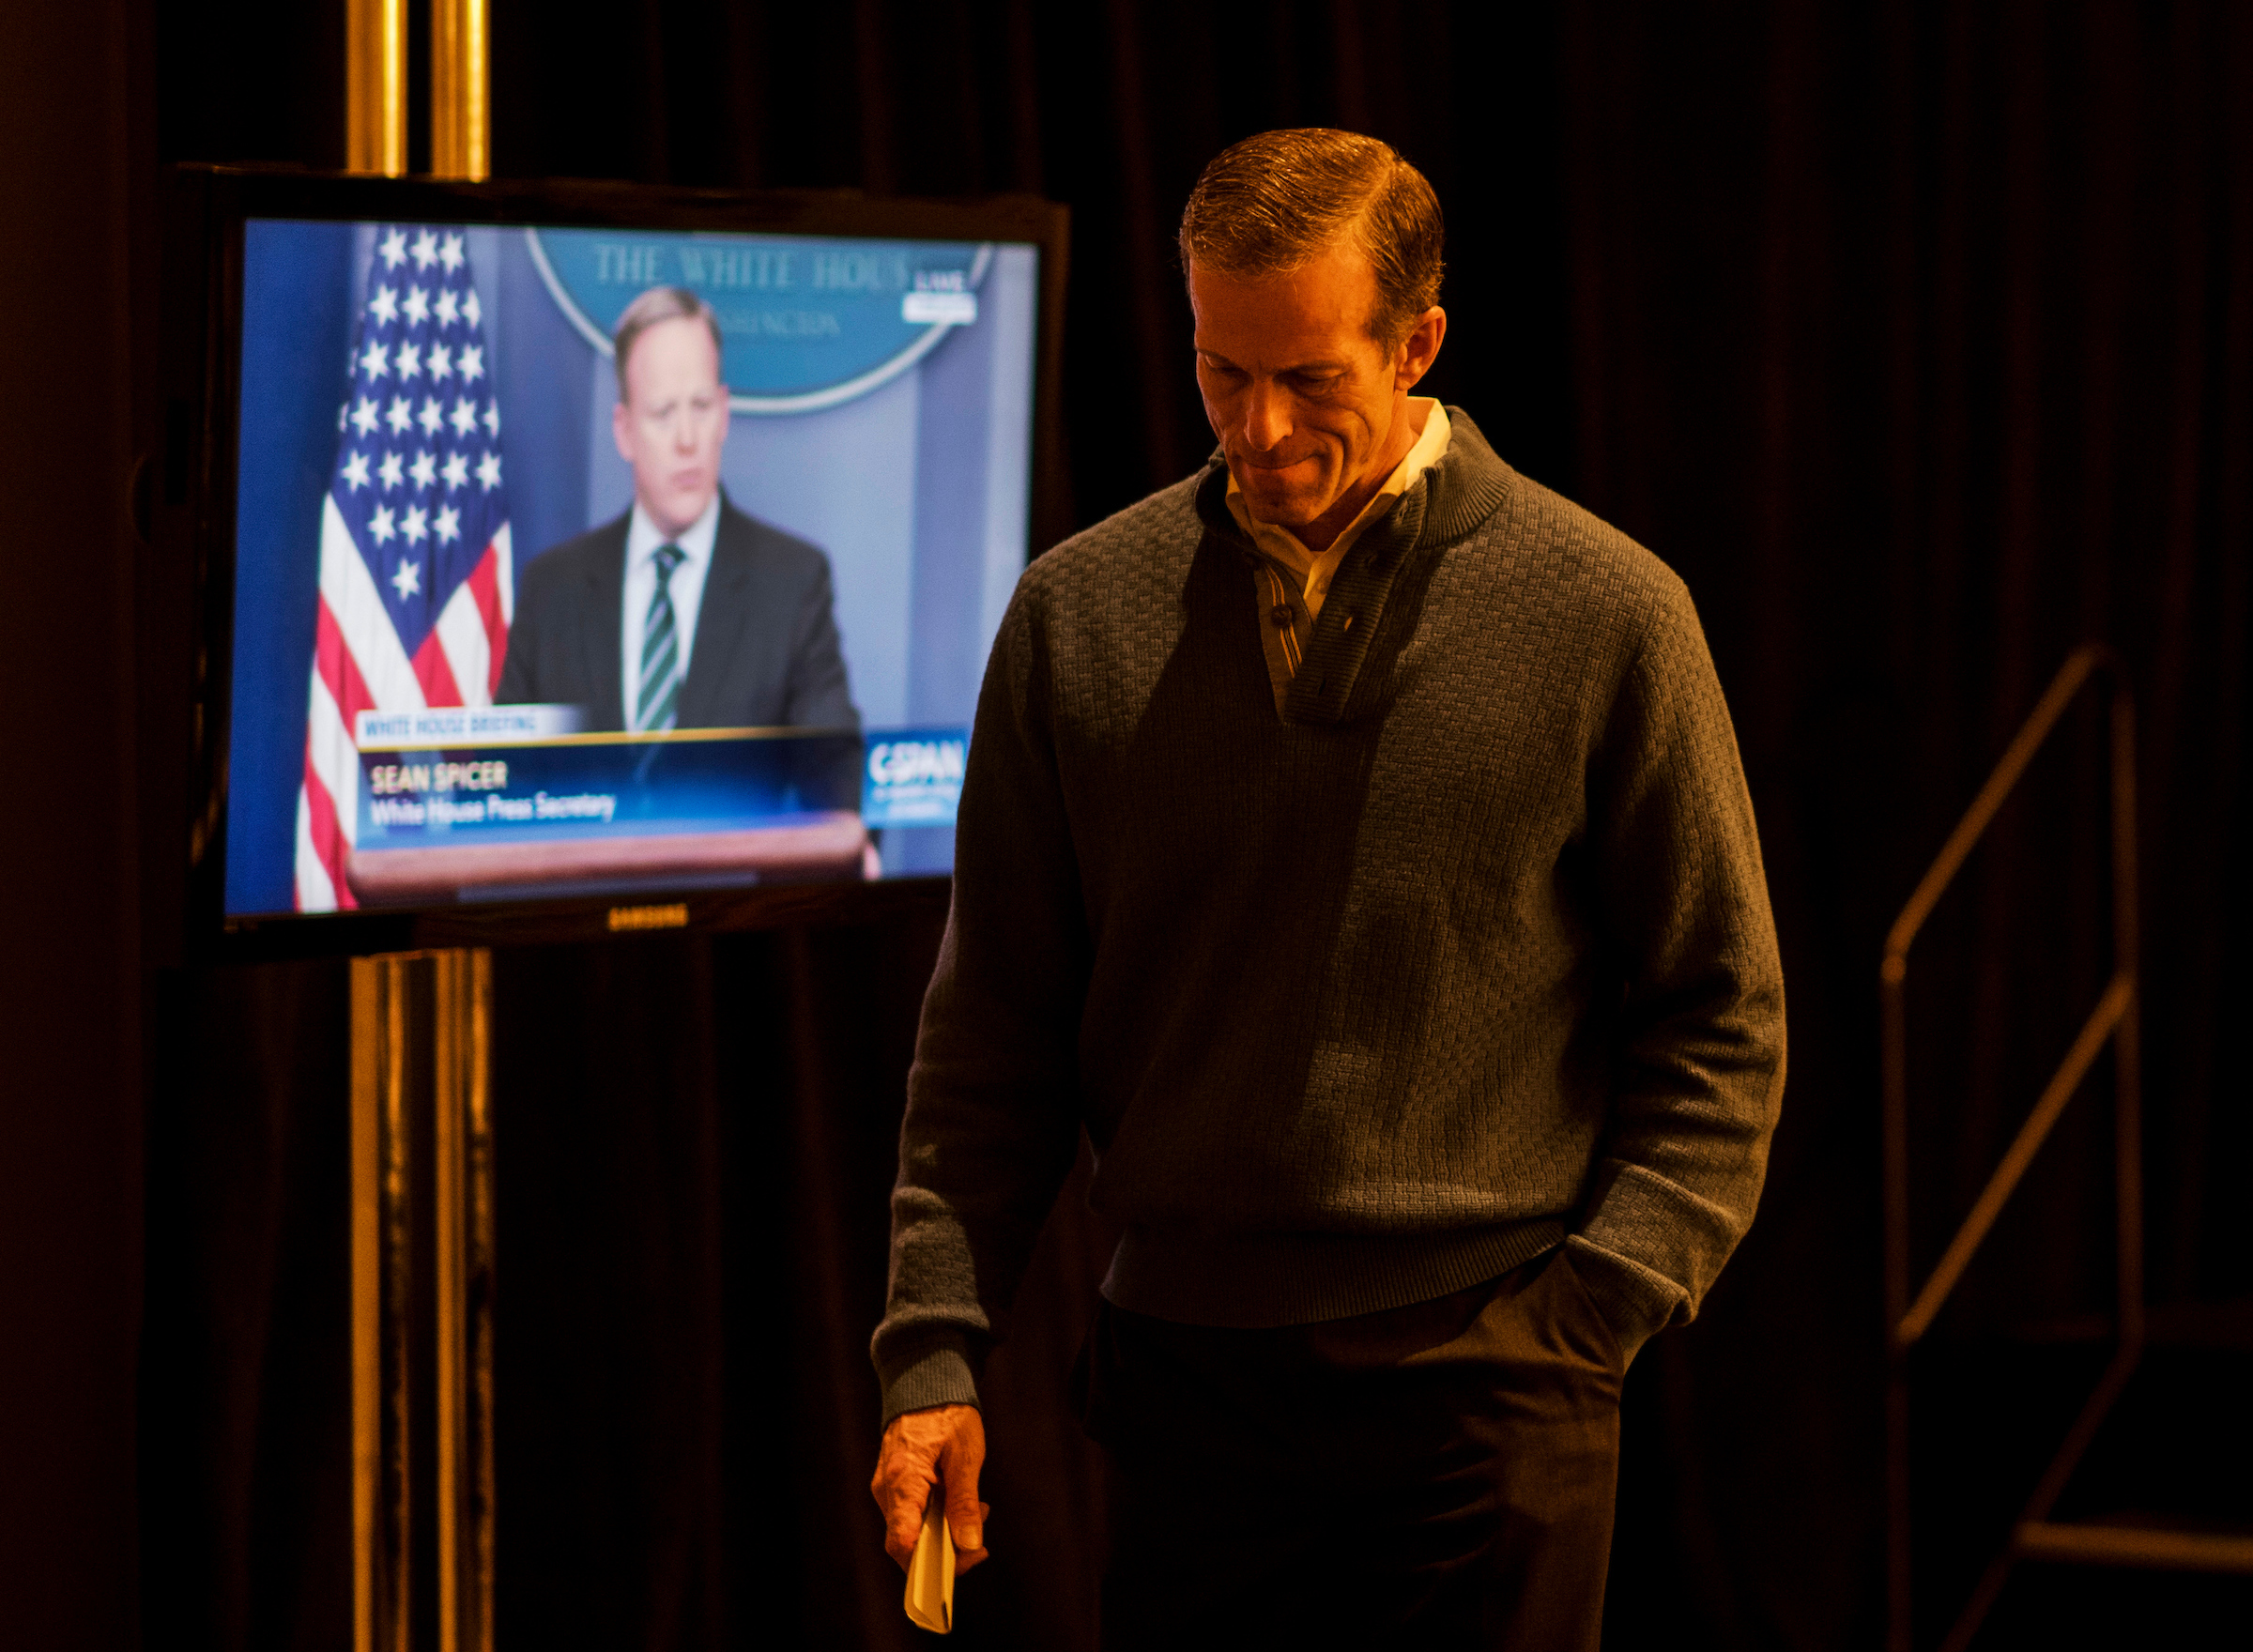 UNITED STATES - JANUARY 25: White House Press Secretary Sean Spicer's press briefing plays on C-SPAN as Senate Republican Conference chair John Thune, R-S. Dak., walks off stage following hismedia availability with House Republican Conference Chair Cathy McMorris Rodgers, R-Wash., at the GOP retreat in Philadelphia on Wednesday, Jan. 25, 2017. House and Senate Republicans are holding their retreat through Friday in Philadelphia, with a visit from President Donald Trump expected Thursday. (Photo By Bill Clark/CQ Roll Call)